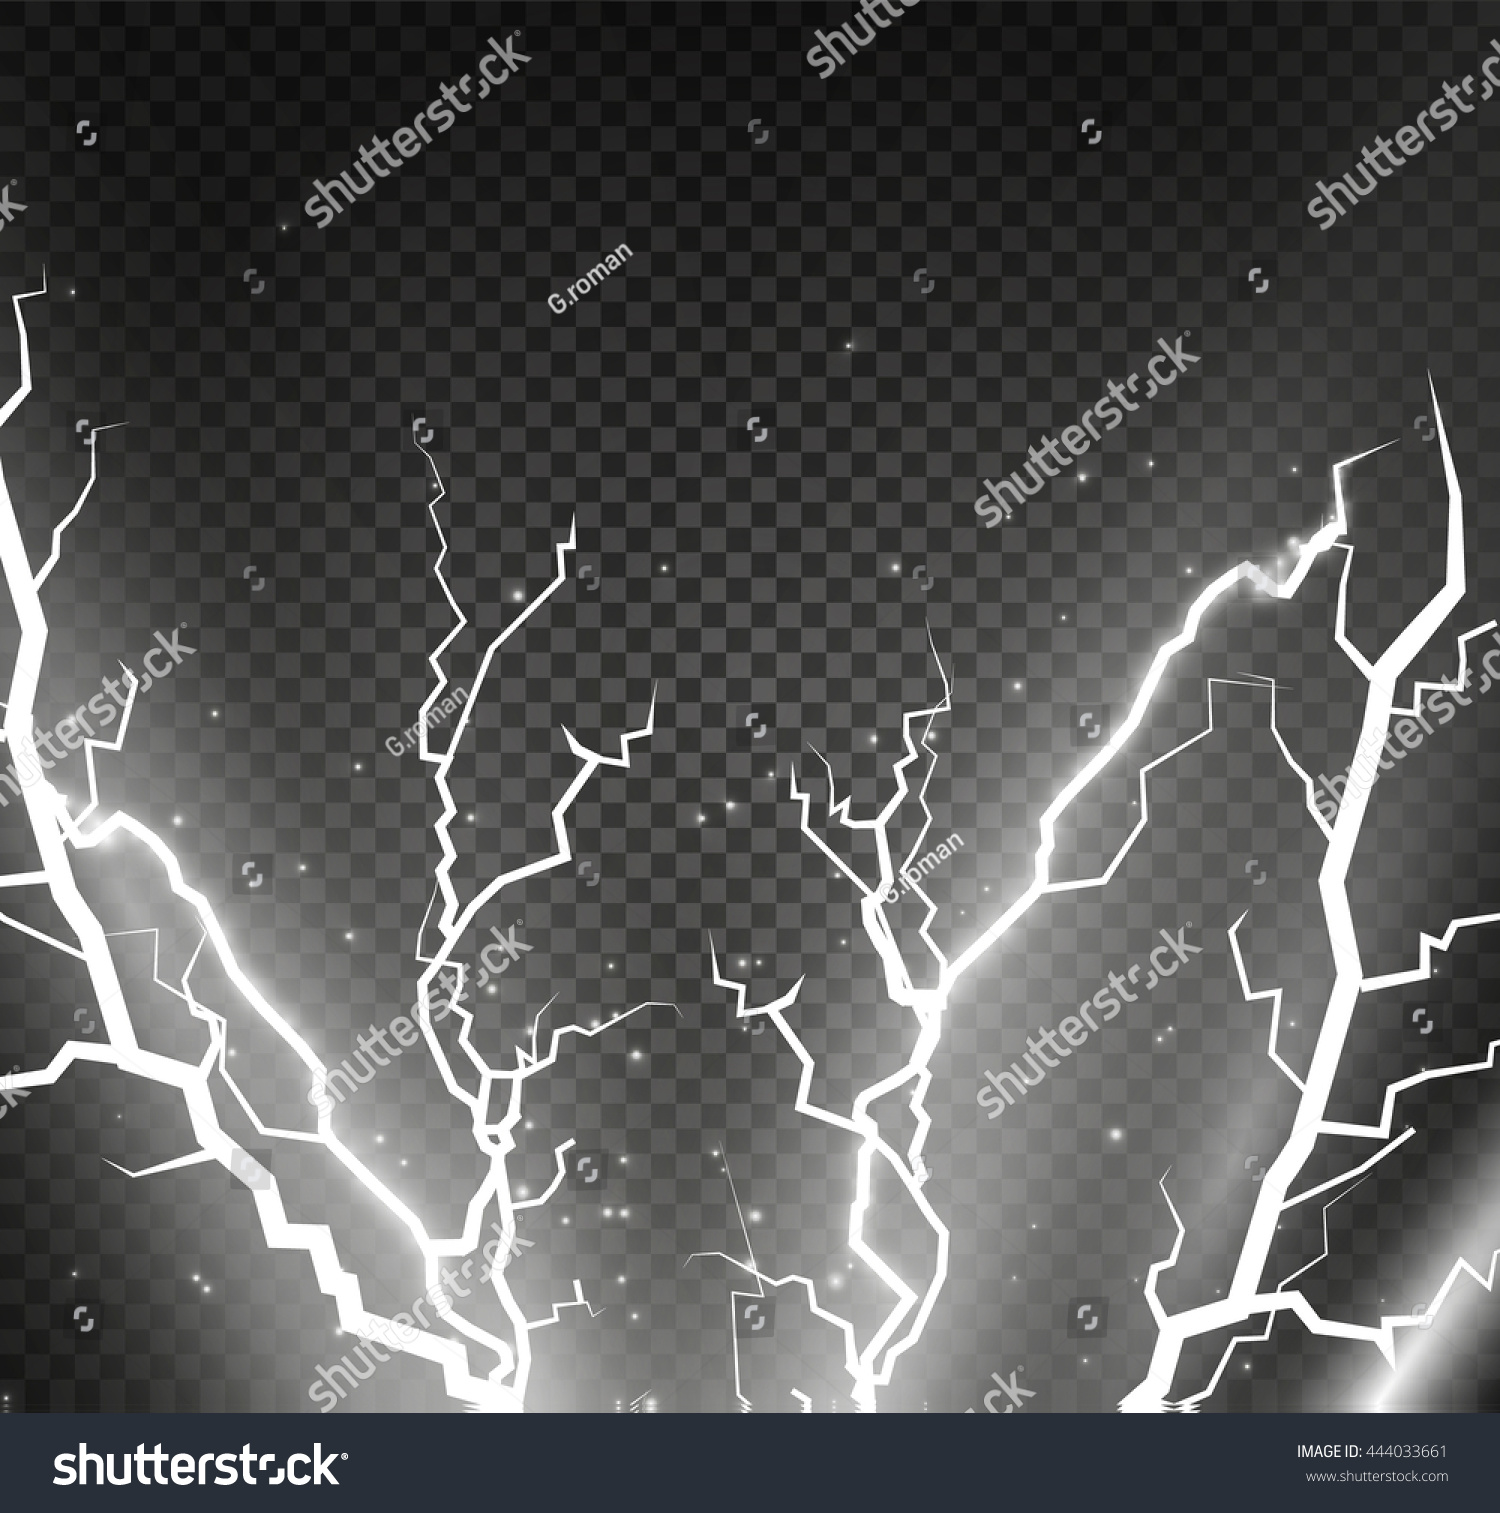 Bright Lightning Electrical Discharge Stock Vector